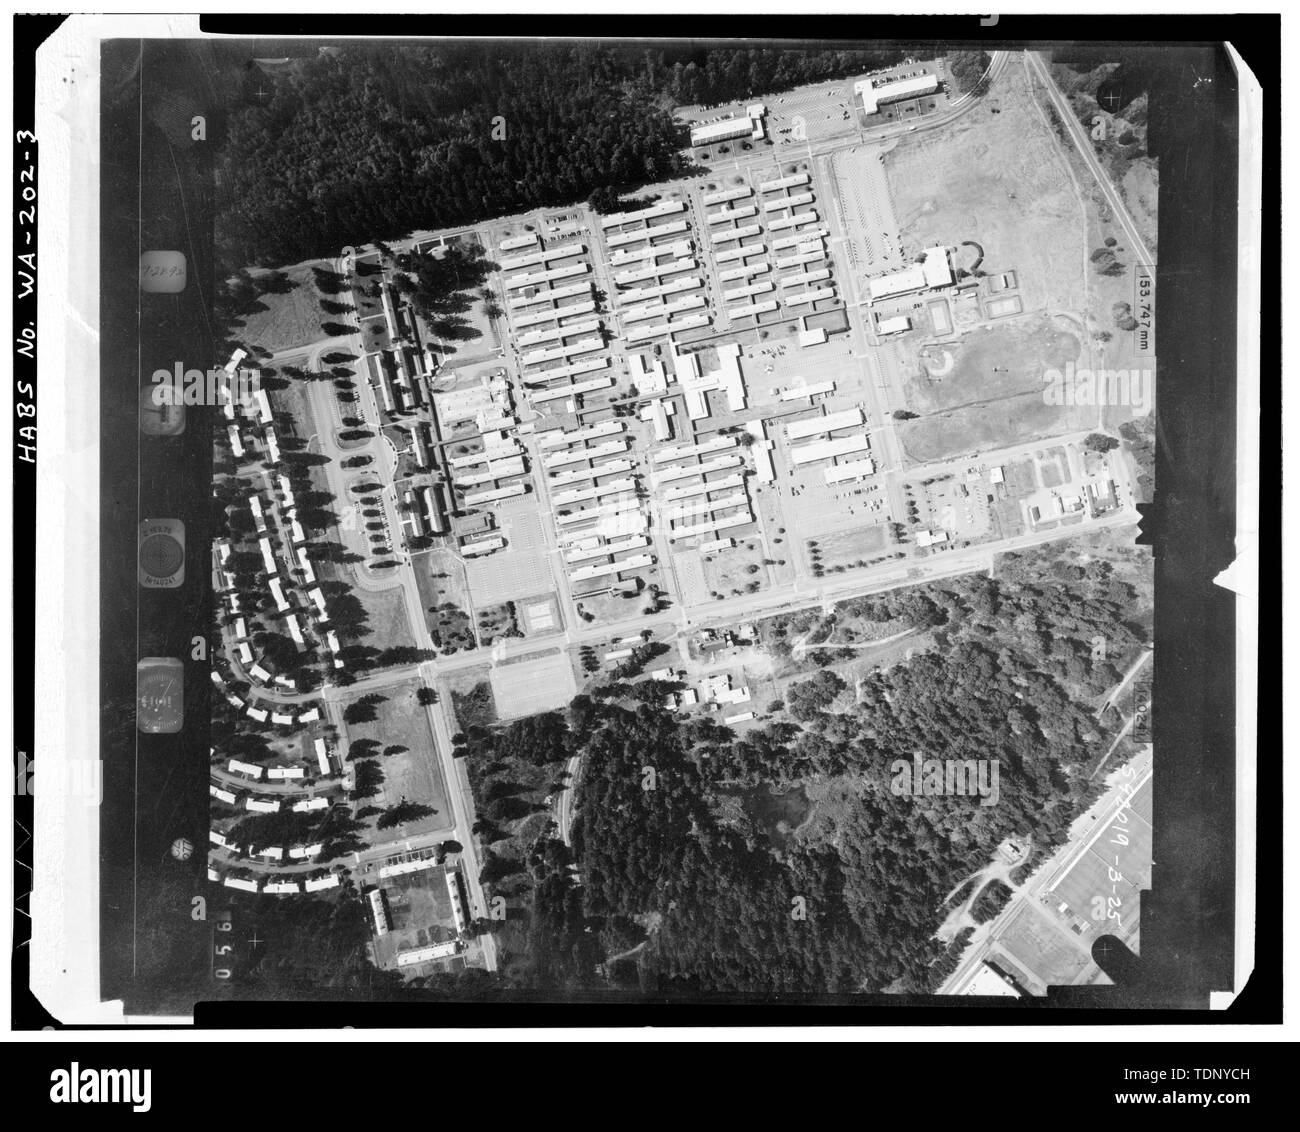 Photocopy of an aerial plan view photograph of Madigan Hospital taken on September 28, 1992. HABS negative is a 4x5' copy negative made from original color photograph in the collection of the U.S. Army Corps of Engineers, Seattle District Office, Seattle, WA. - Madigan Hospital, Bounded by Wilson and McKinley Avenues and Garfield and Lincoln Streets, DuPont, Pierce County, WA; Sawyer, Philip; Steinbrueck, Victor E; Boespflug, John F; Maul, David, transmitter; Price, Virginia B, transmitter - Stock Image